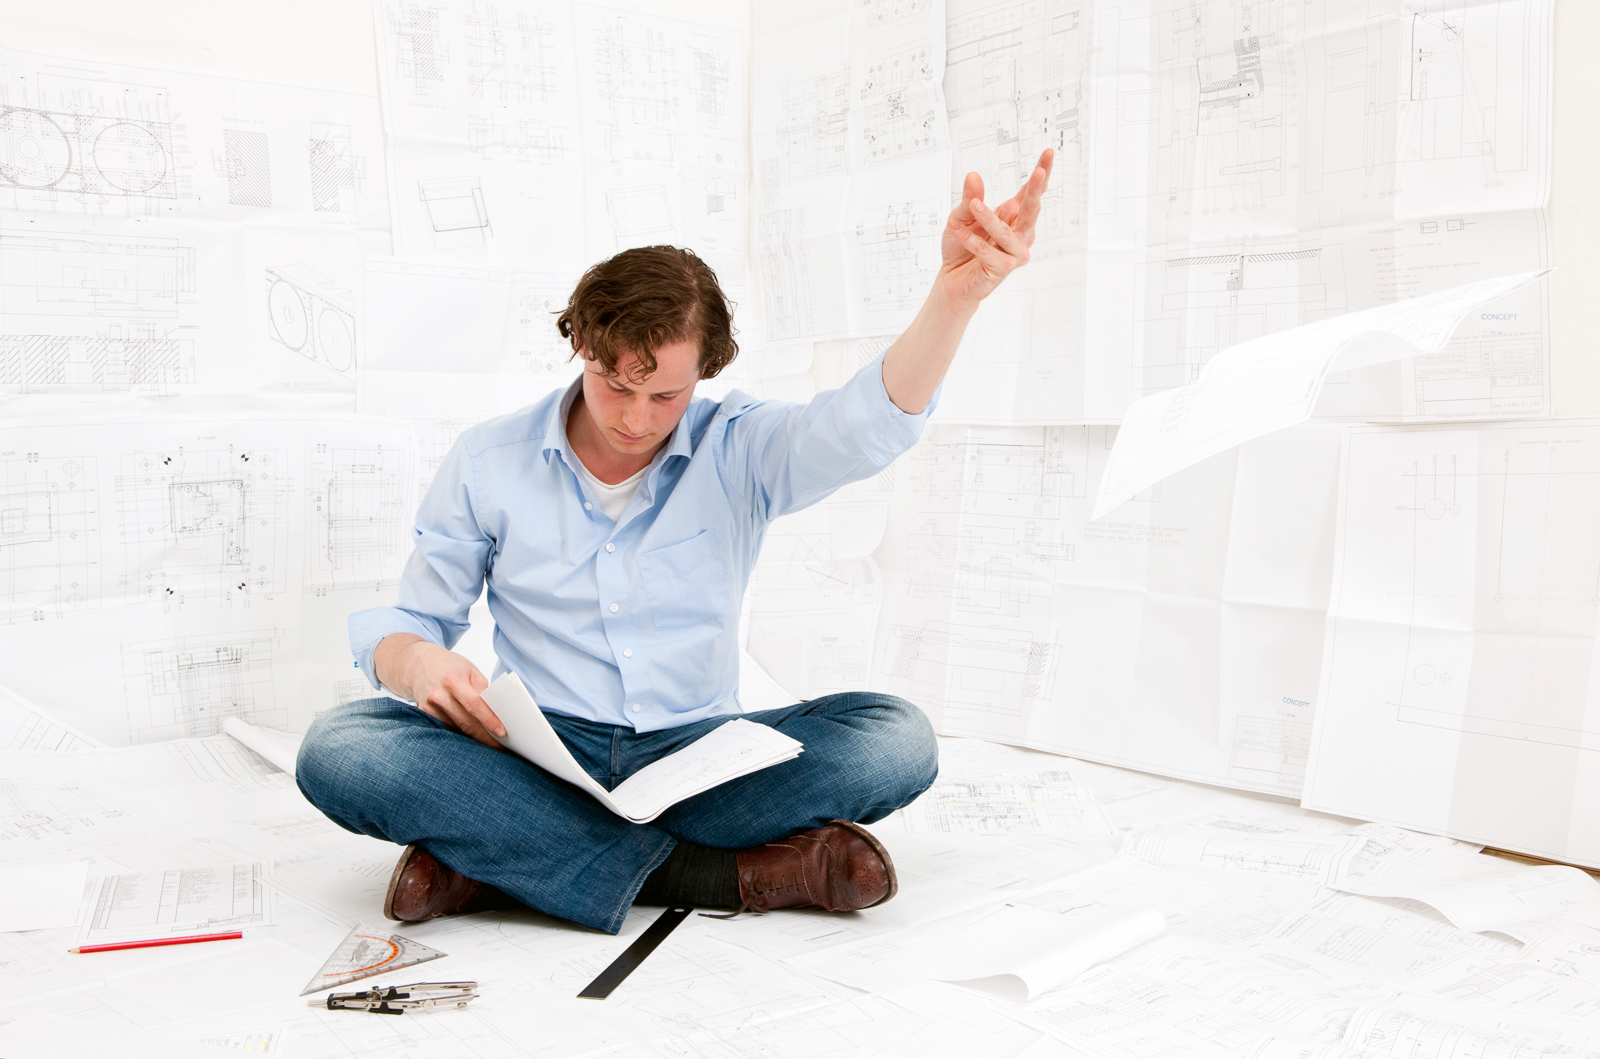 Young mechanical engineer, sitting on the floor, surrounded by complexe technical drawings of an injection mould, throwing away a drawing, whilst remaining focused on the documents in his hand